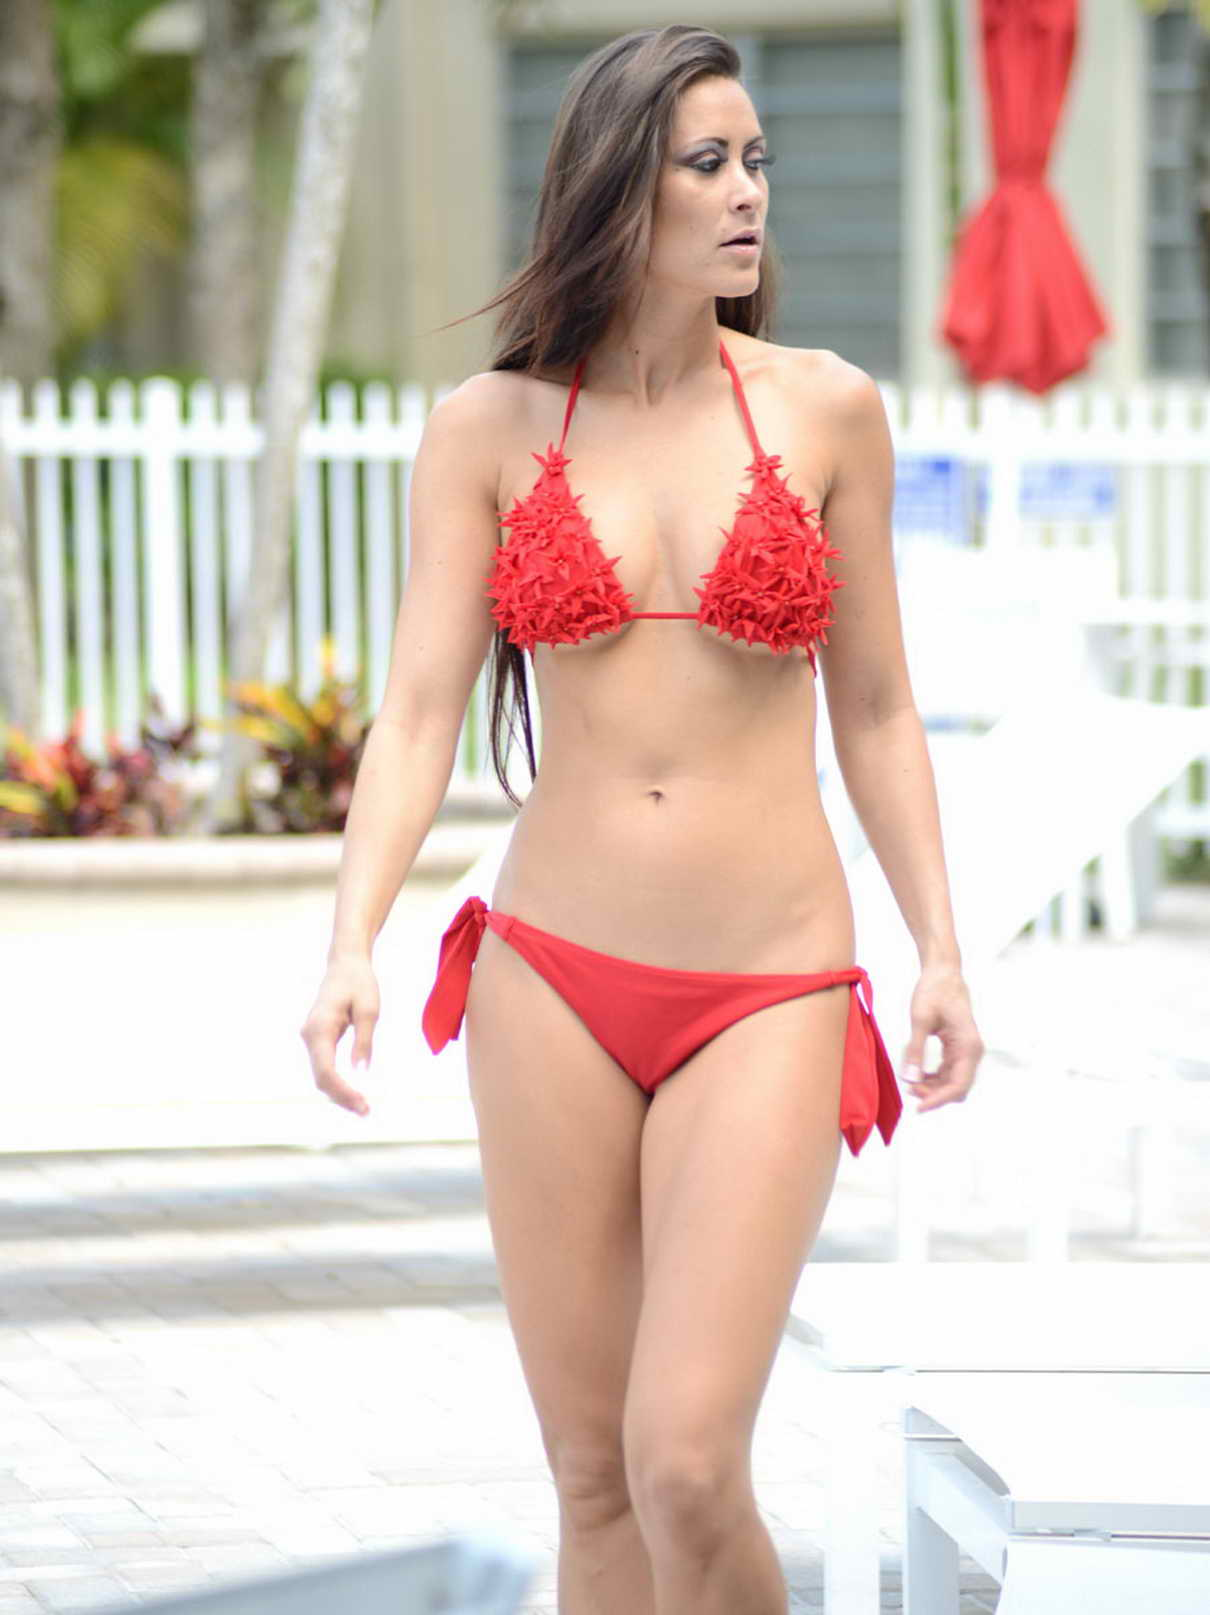 Anais Zanotti anais zanotti in red bikini in miami-1 – lacelebs.co